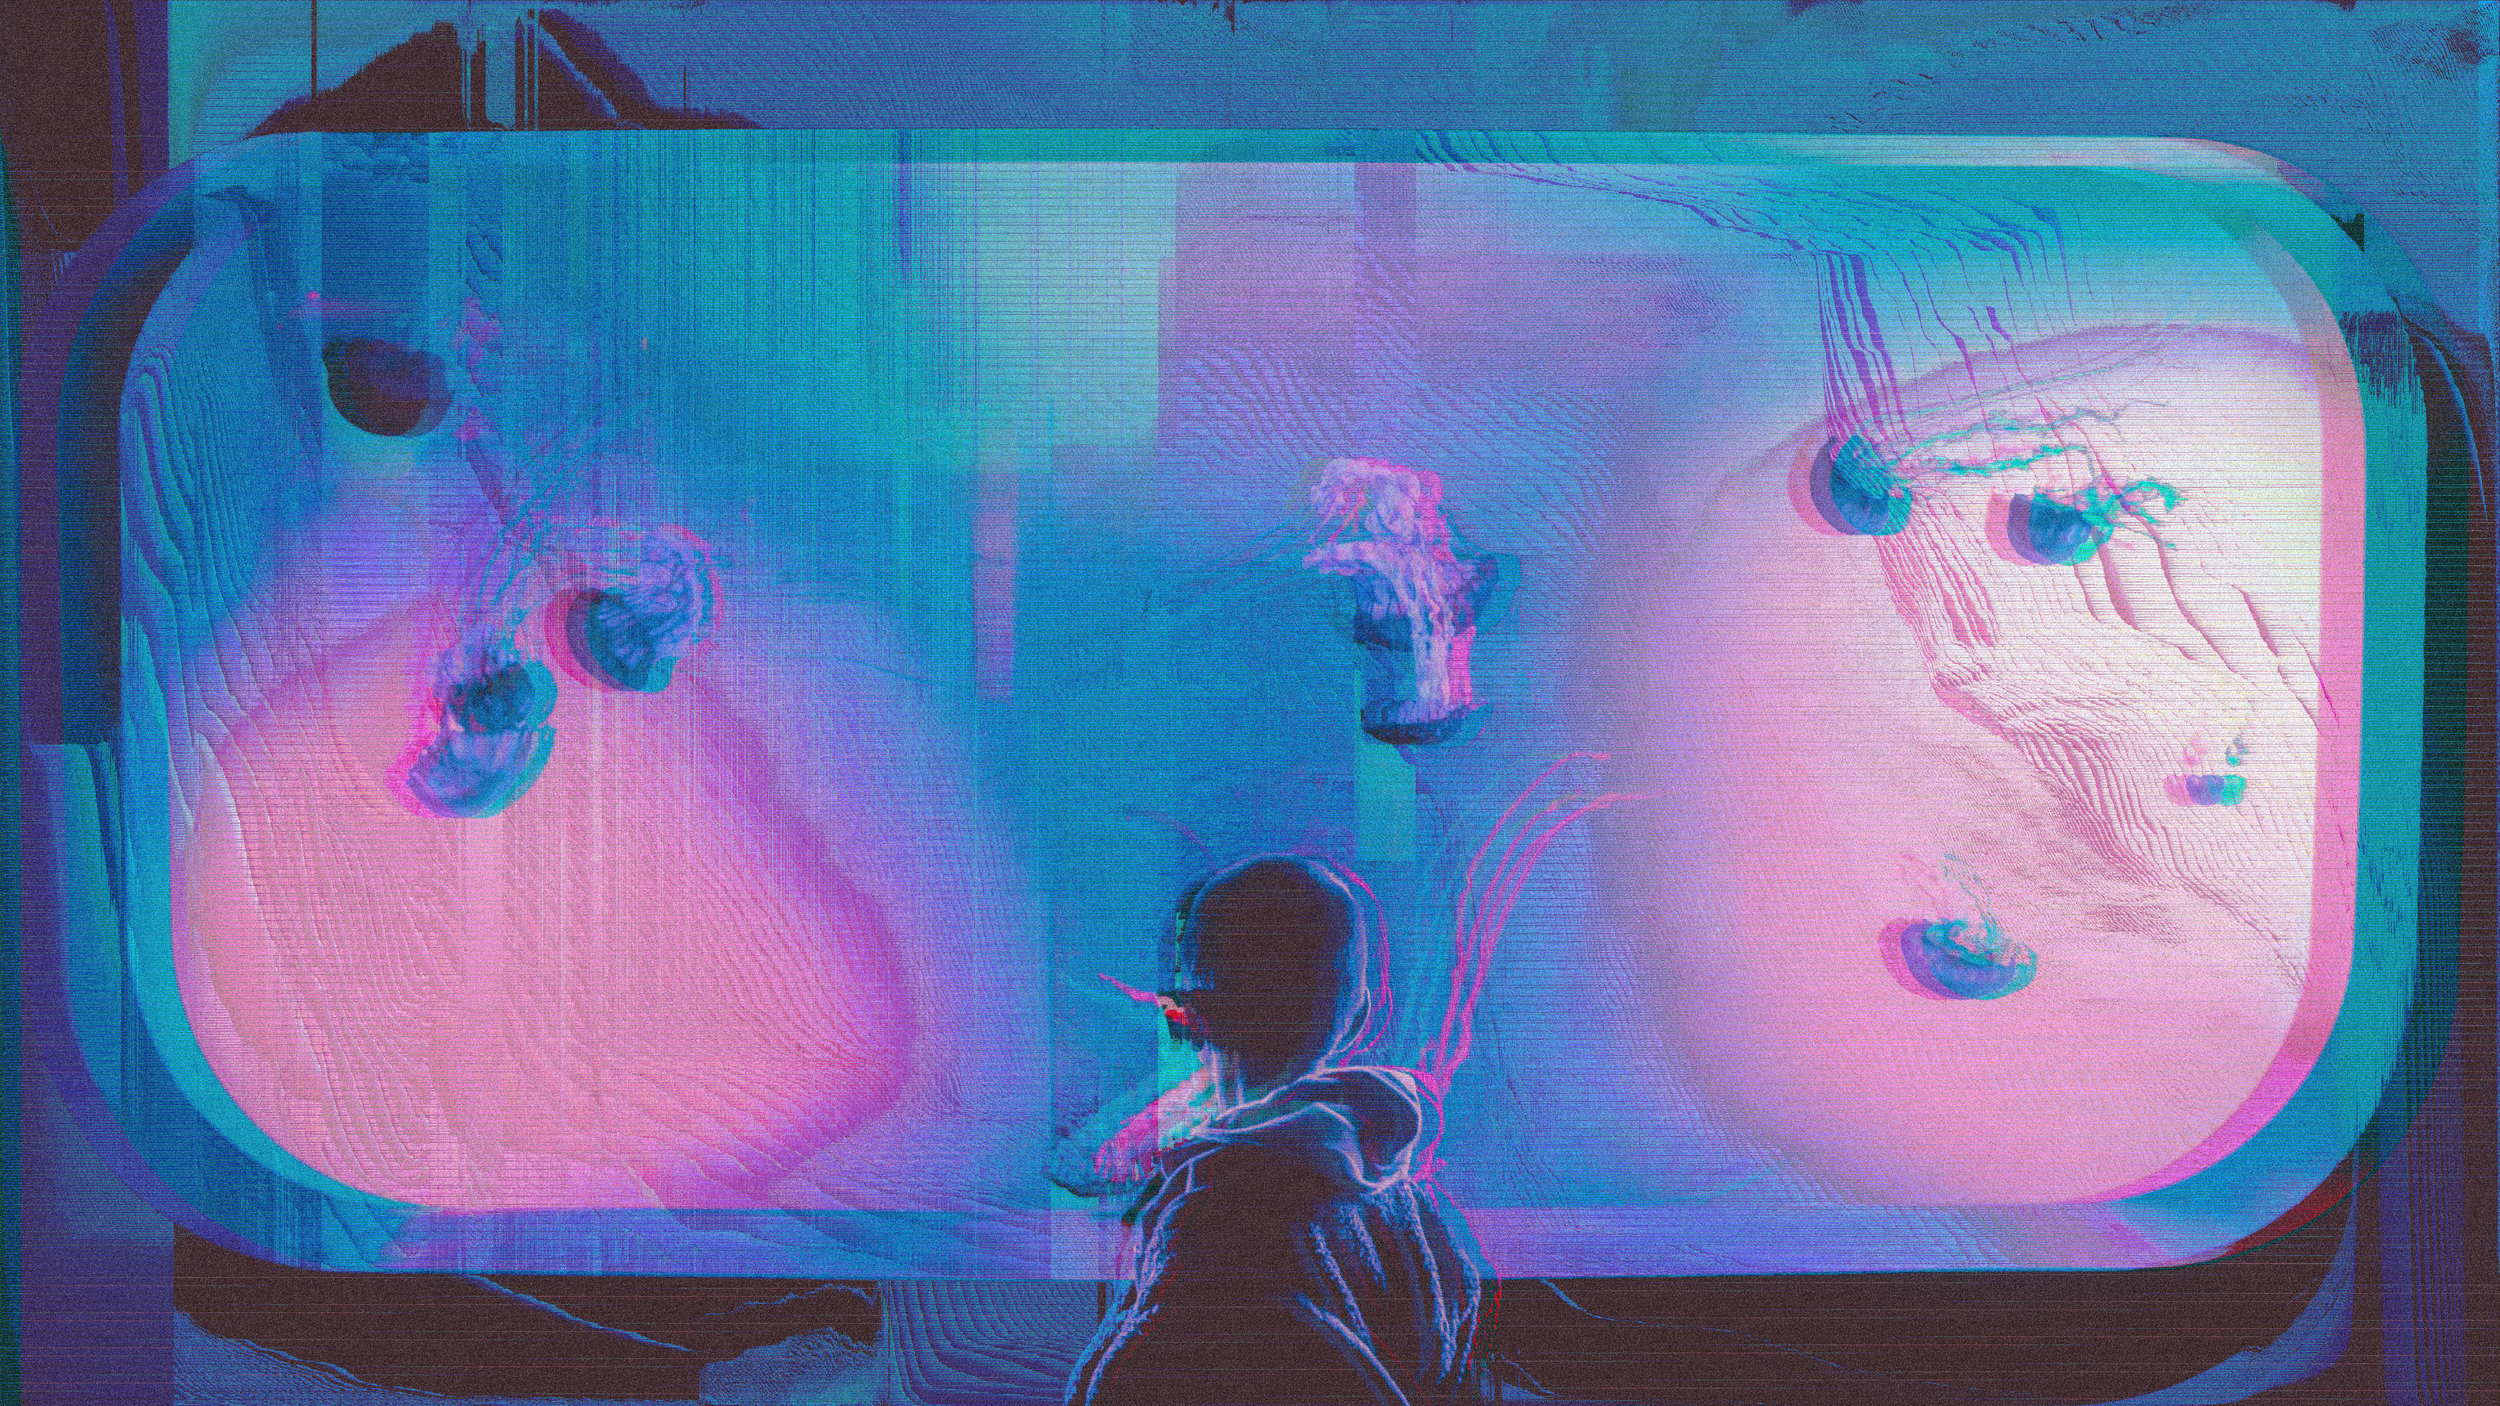 anaglych_2.0_29